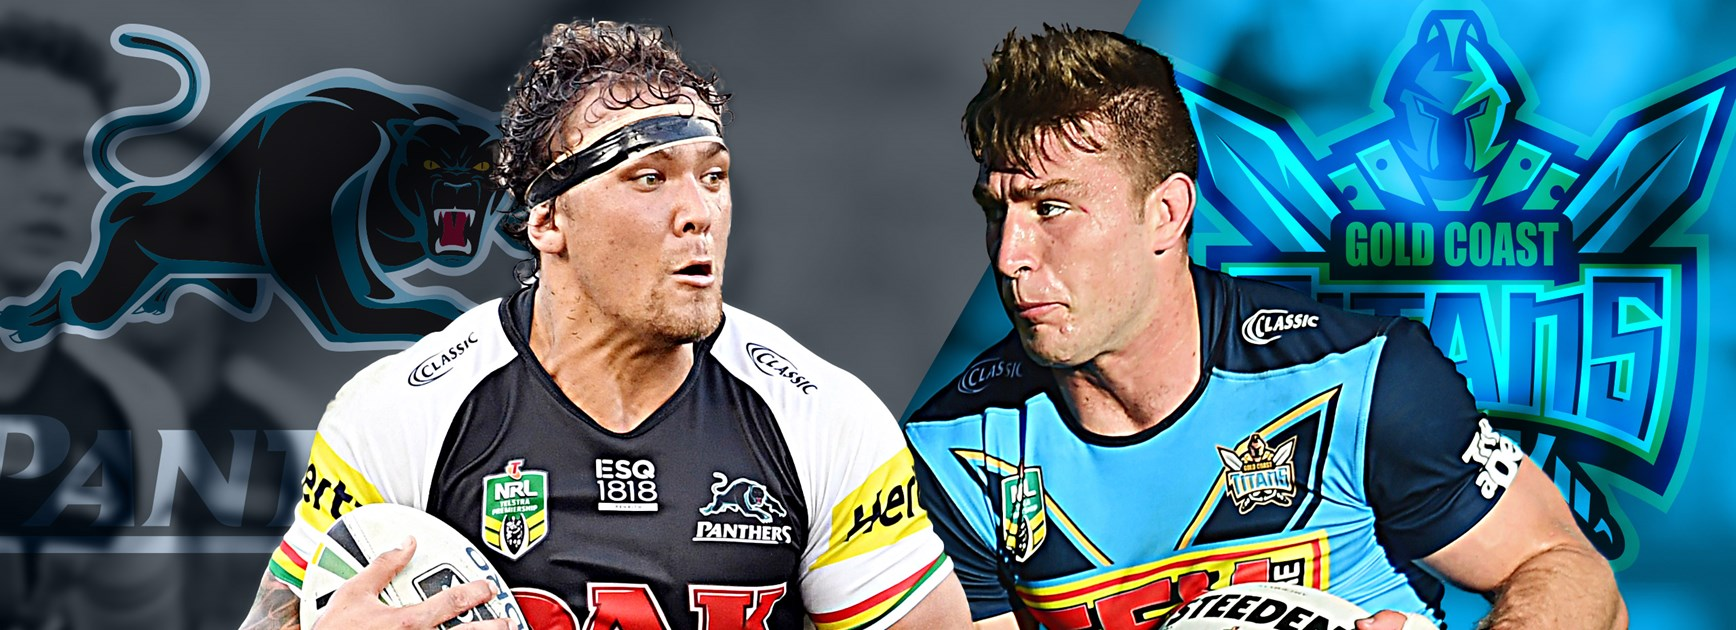 Panthers v Titans: Ellis to debut; King to start